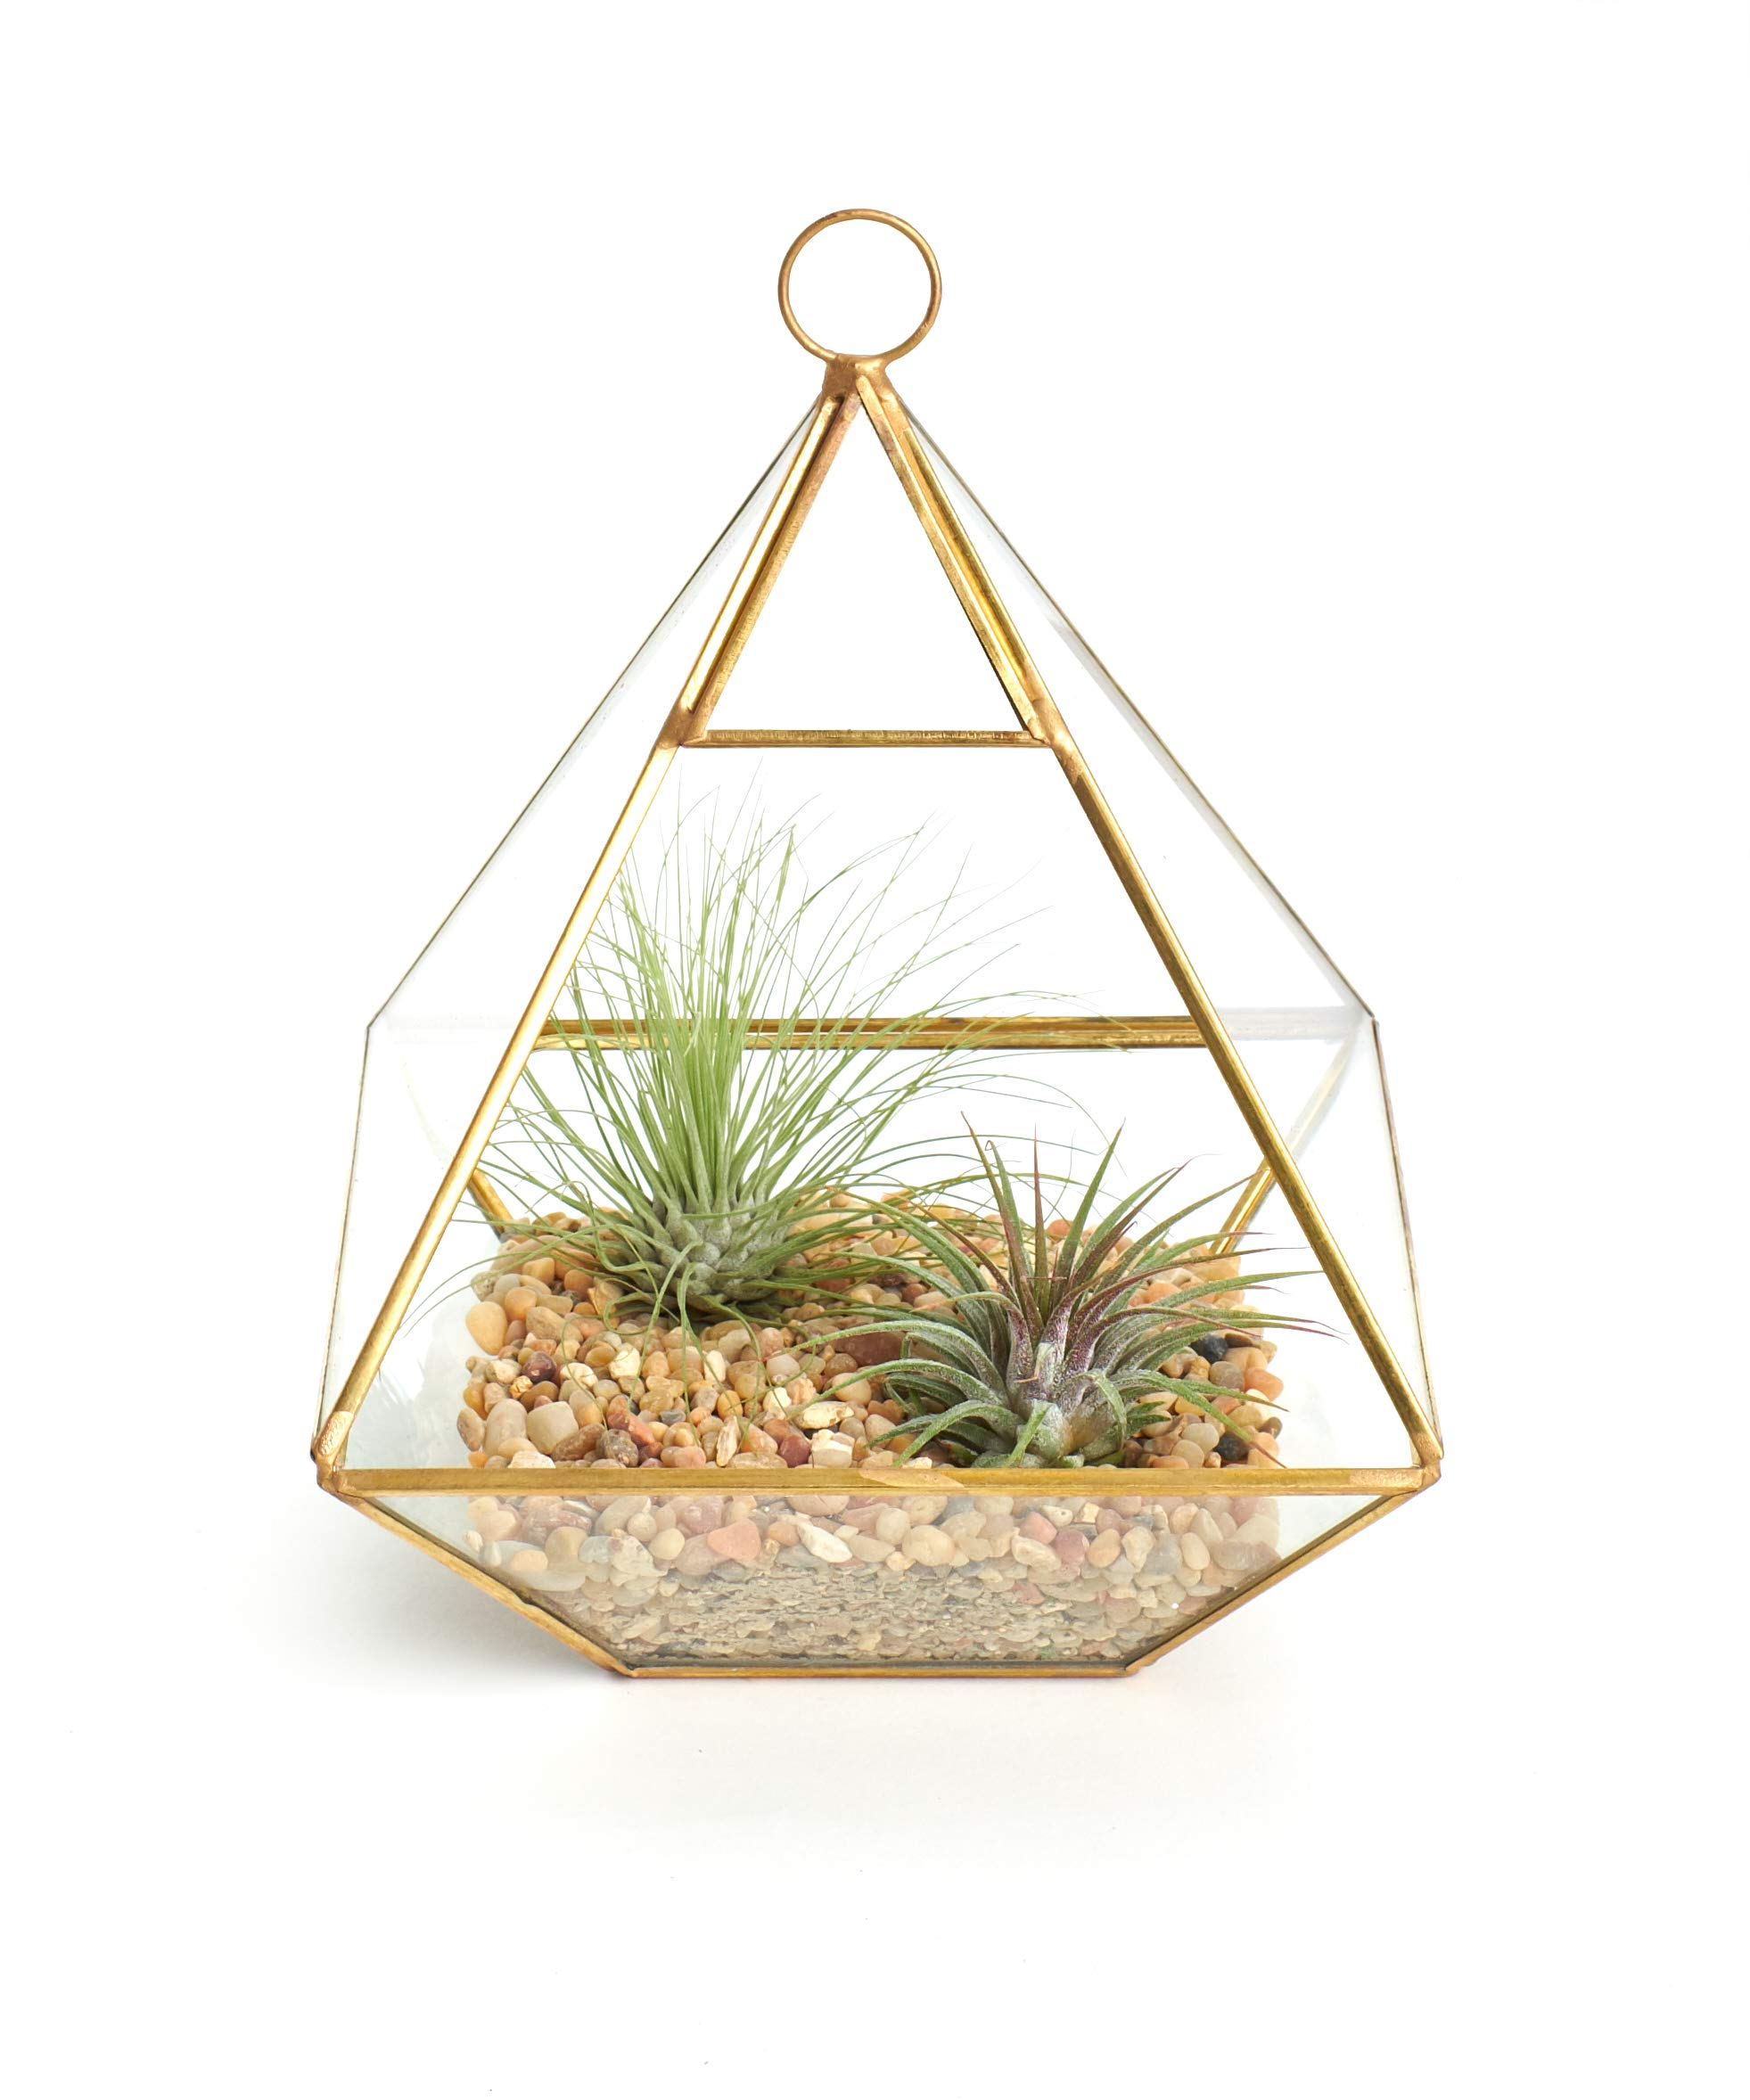 Shop Succulents Geometric Terrarium Kit | Live Air Plants Holder Decor, Gold